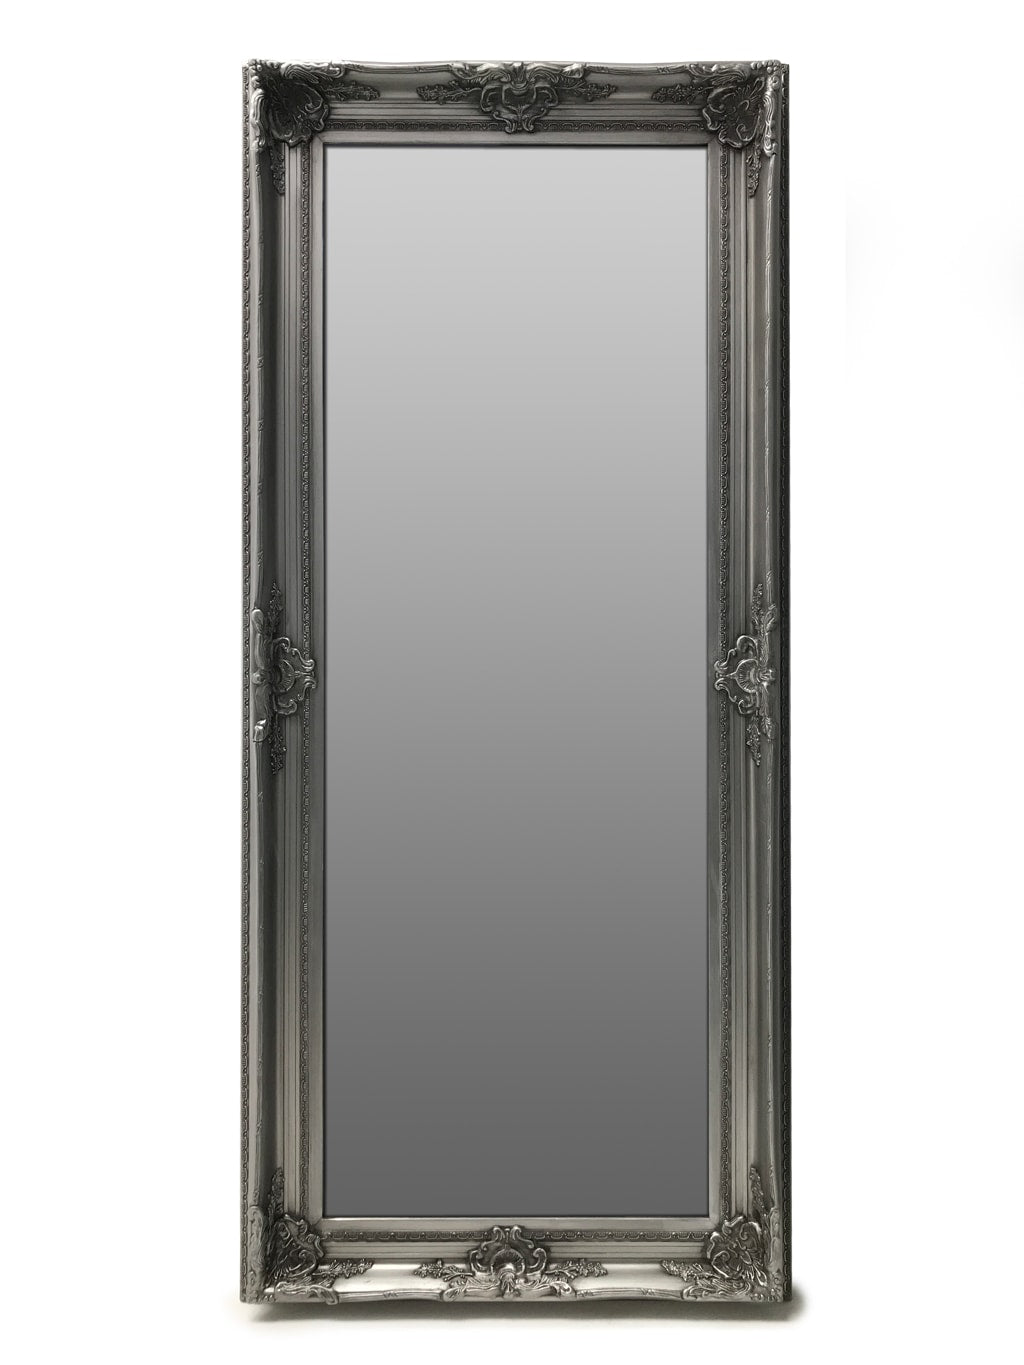 Swept Frame Mirror Silver with Bevelled Glass